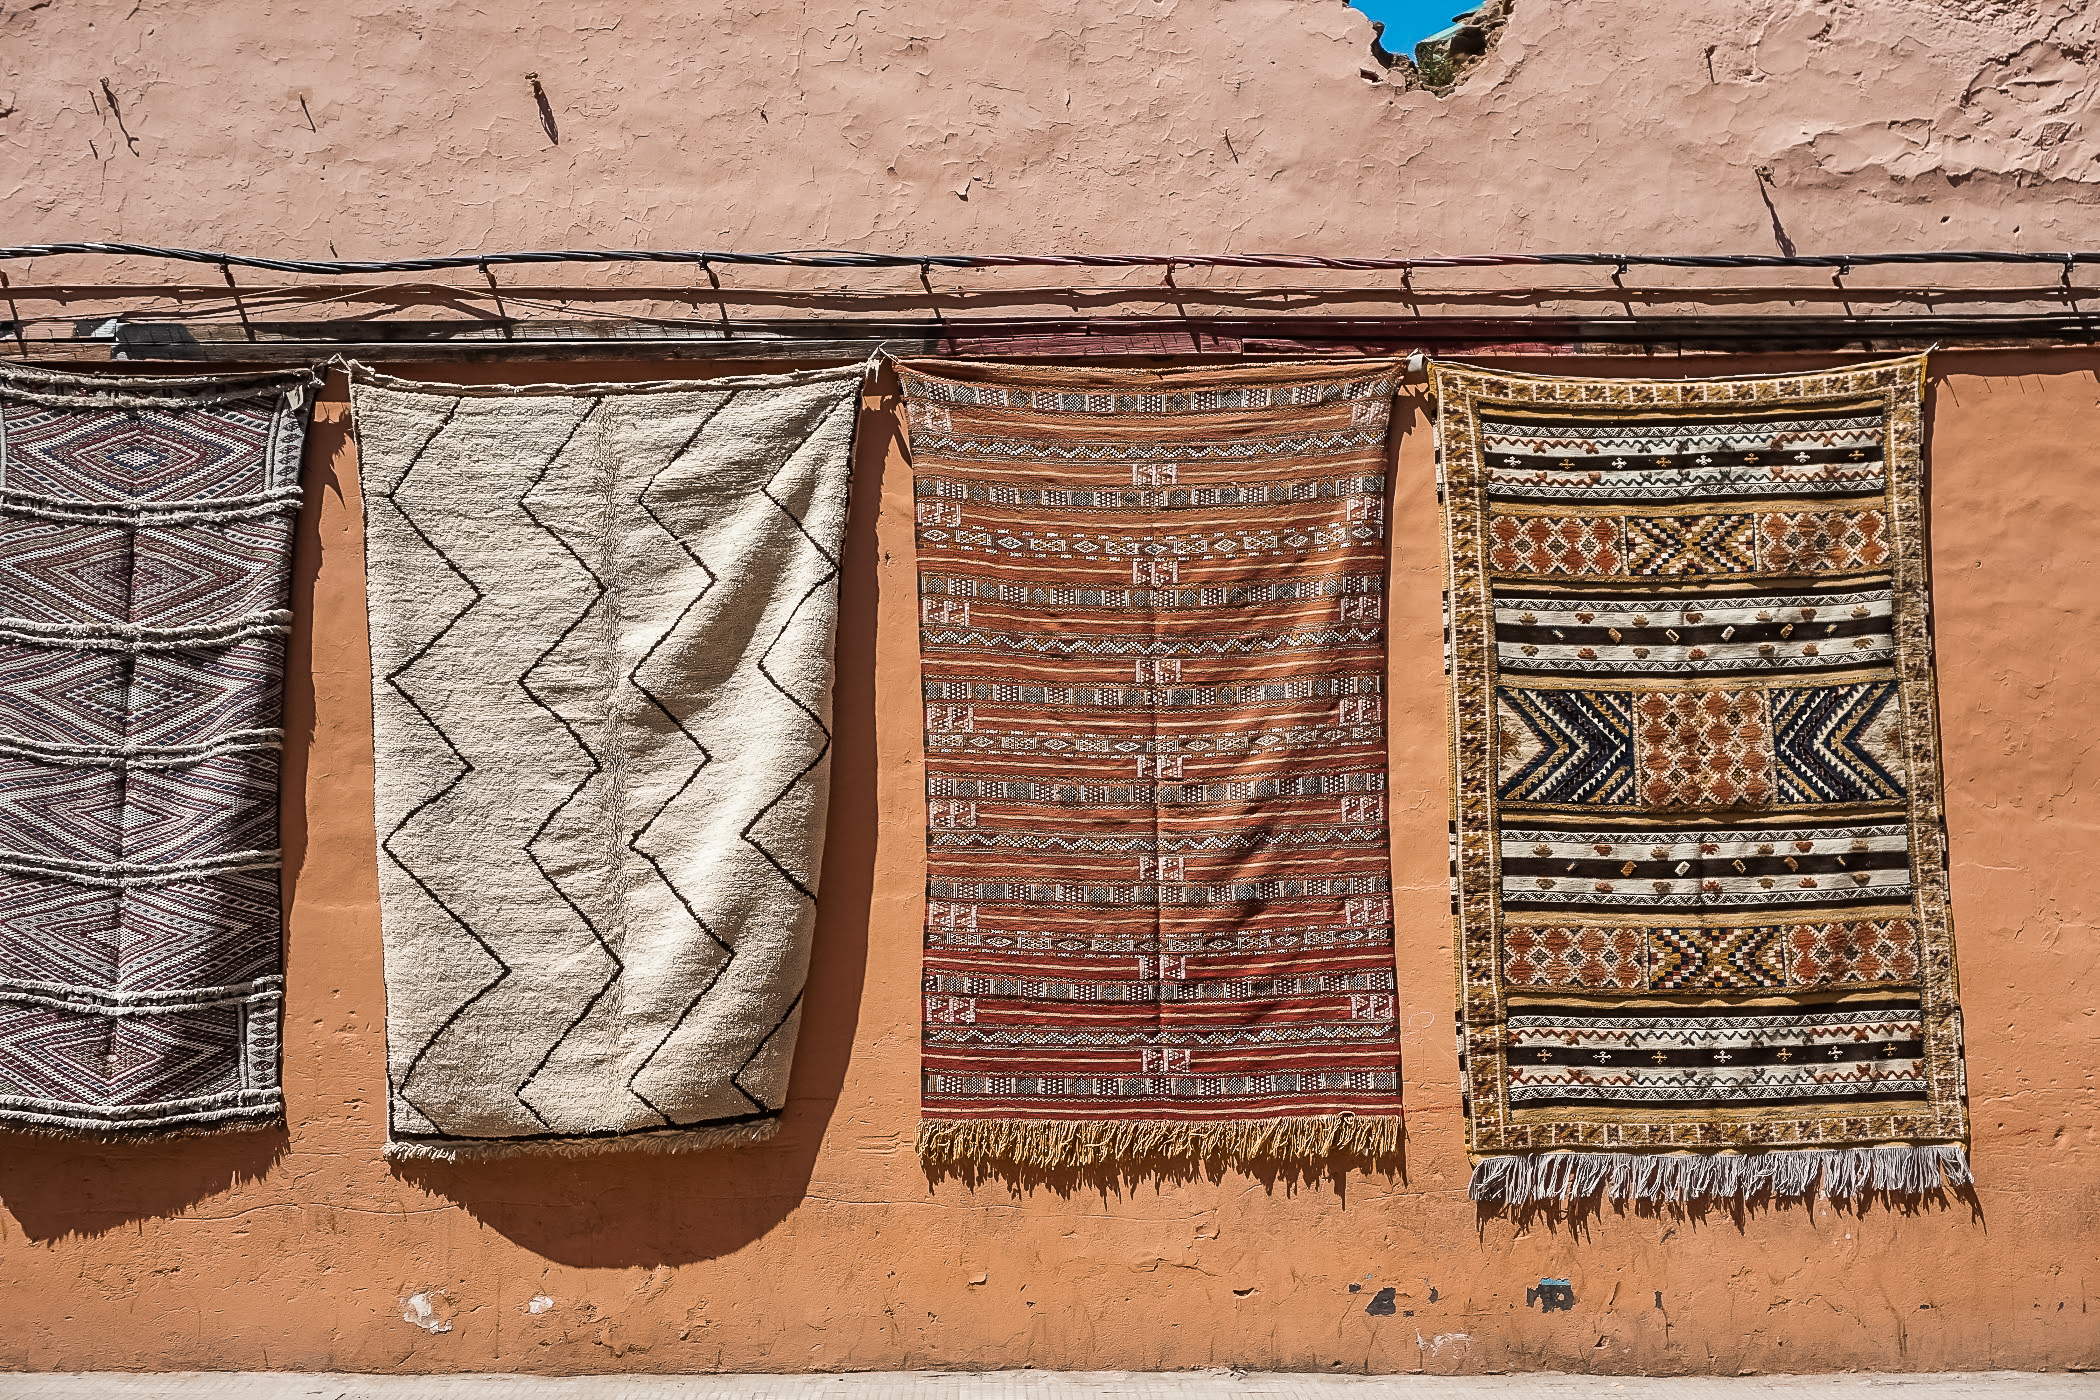 rugs hanging on a red wall in marrakech morroco itinerary